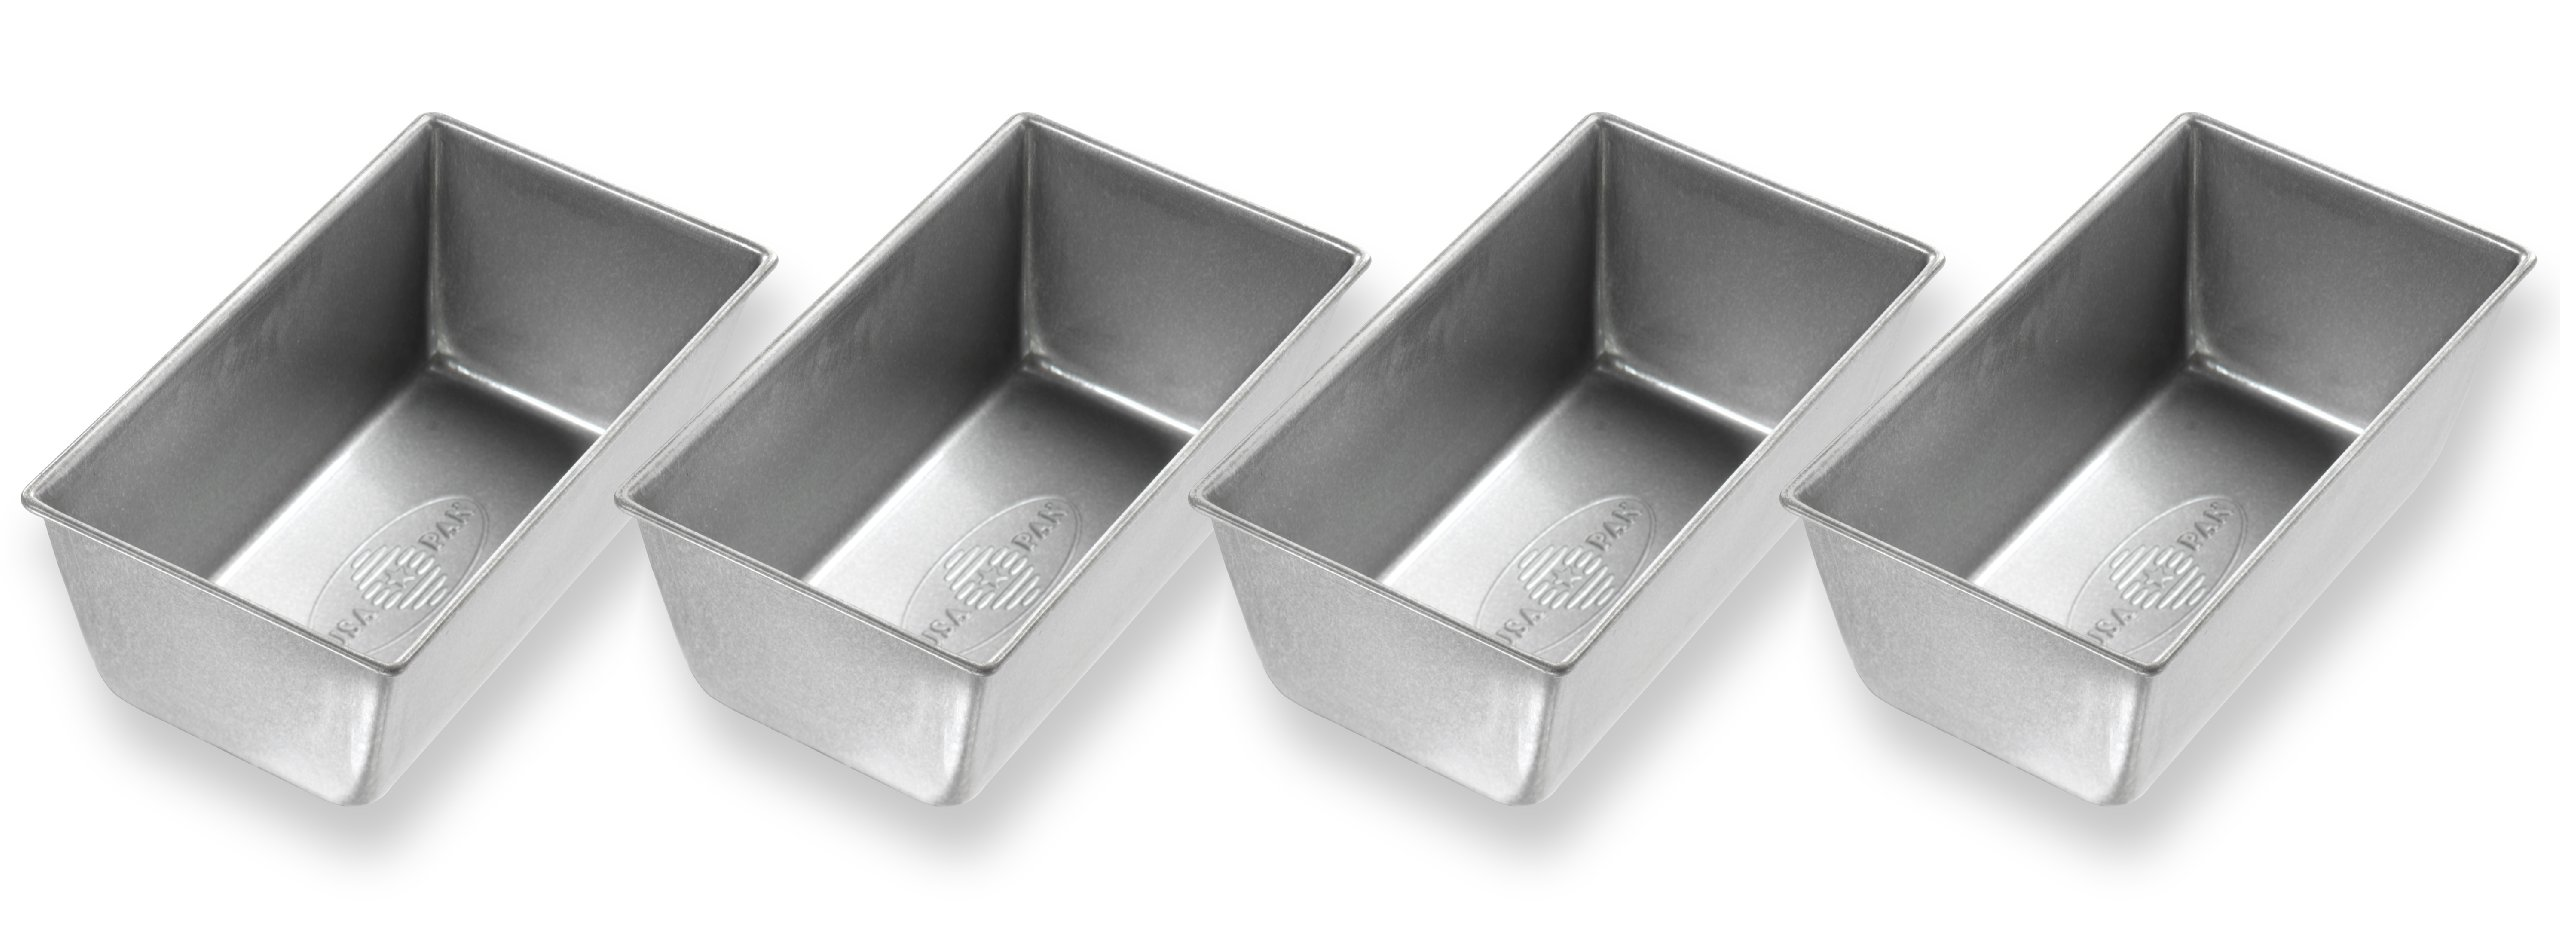 USA Pan Bakeware Mini Loaf Pan, Set of 4, Nonstick & Quick Release Coating, Made in the USA from Aluminized Steel